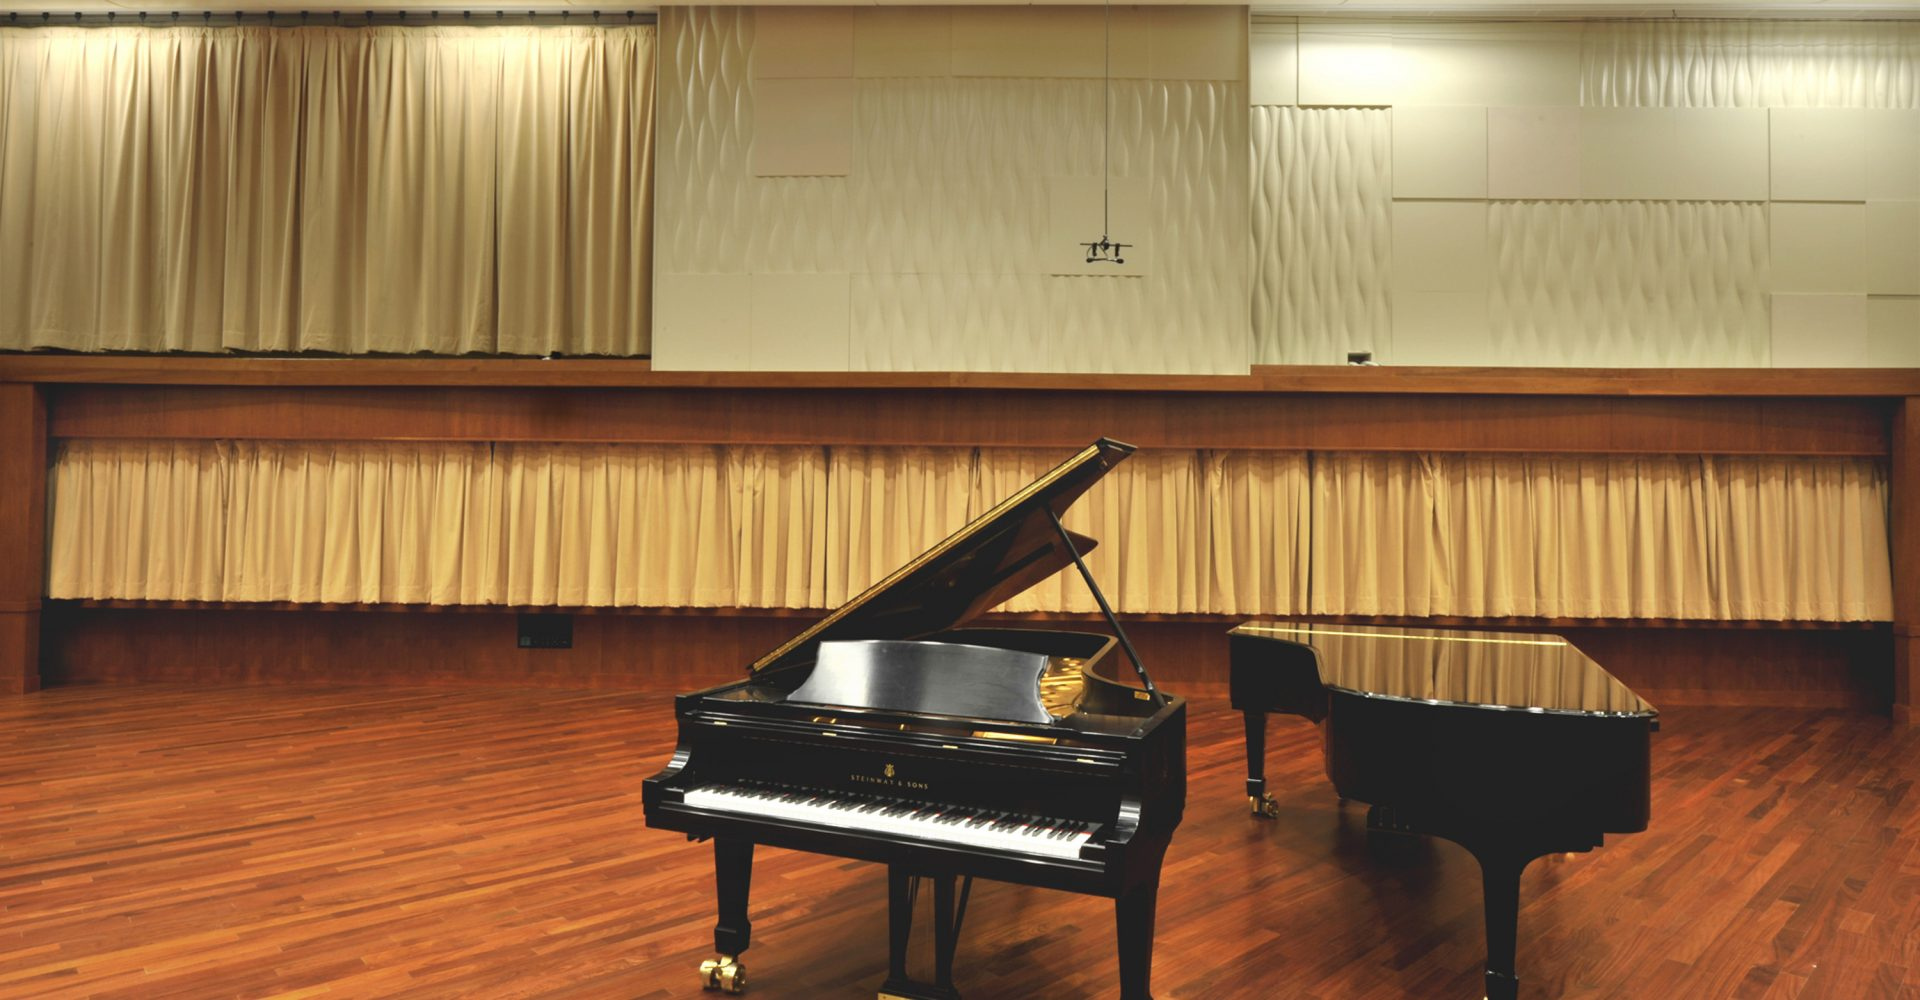 USC - THORNTON SCHOOL OF MUSIC_05